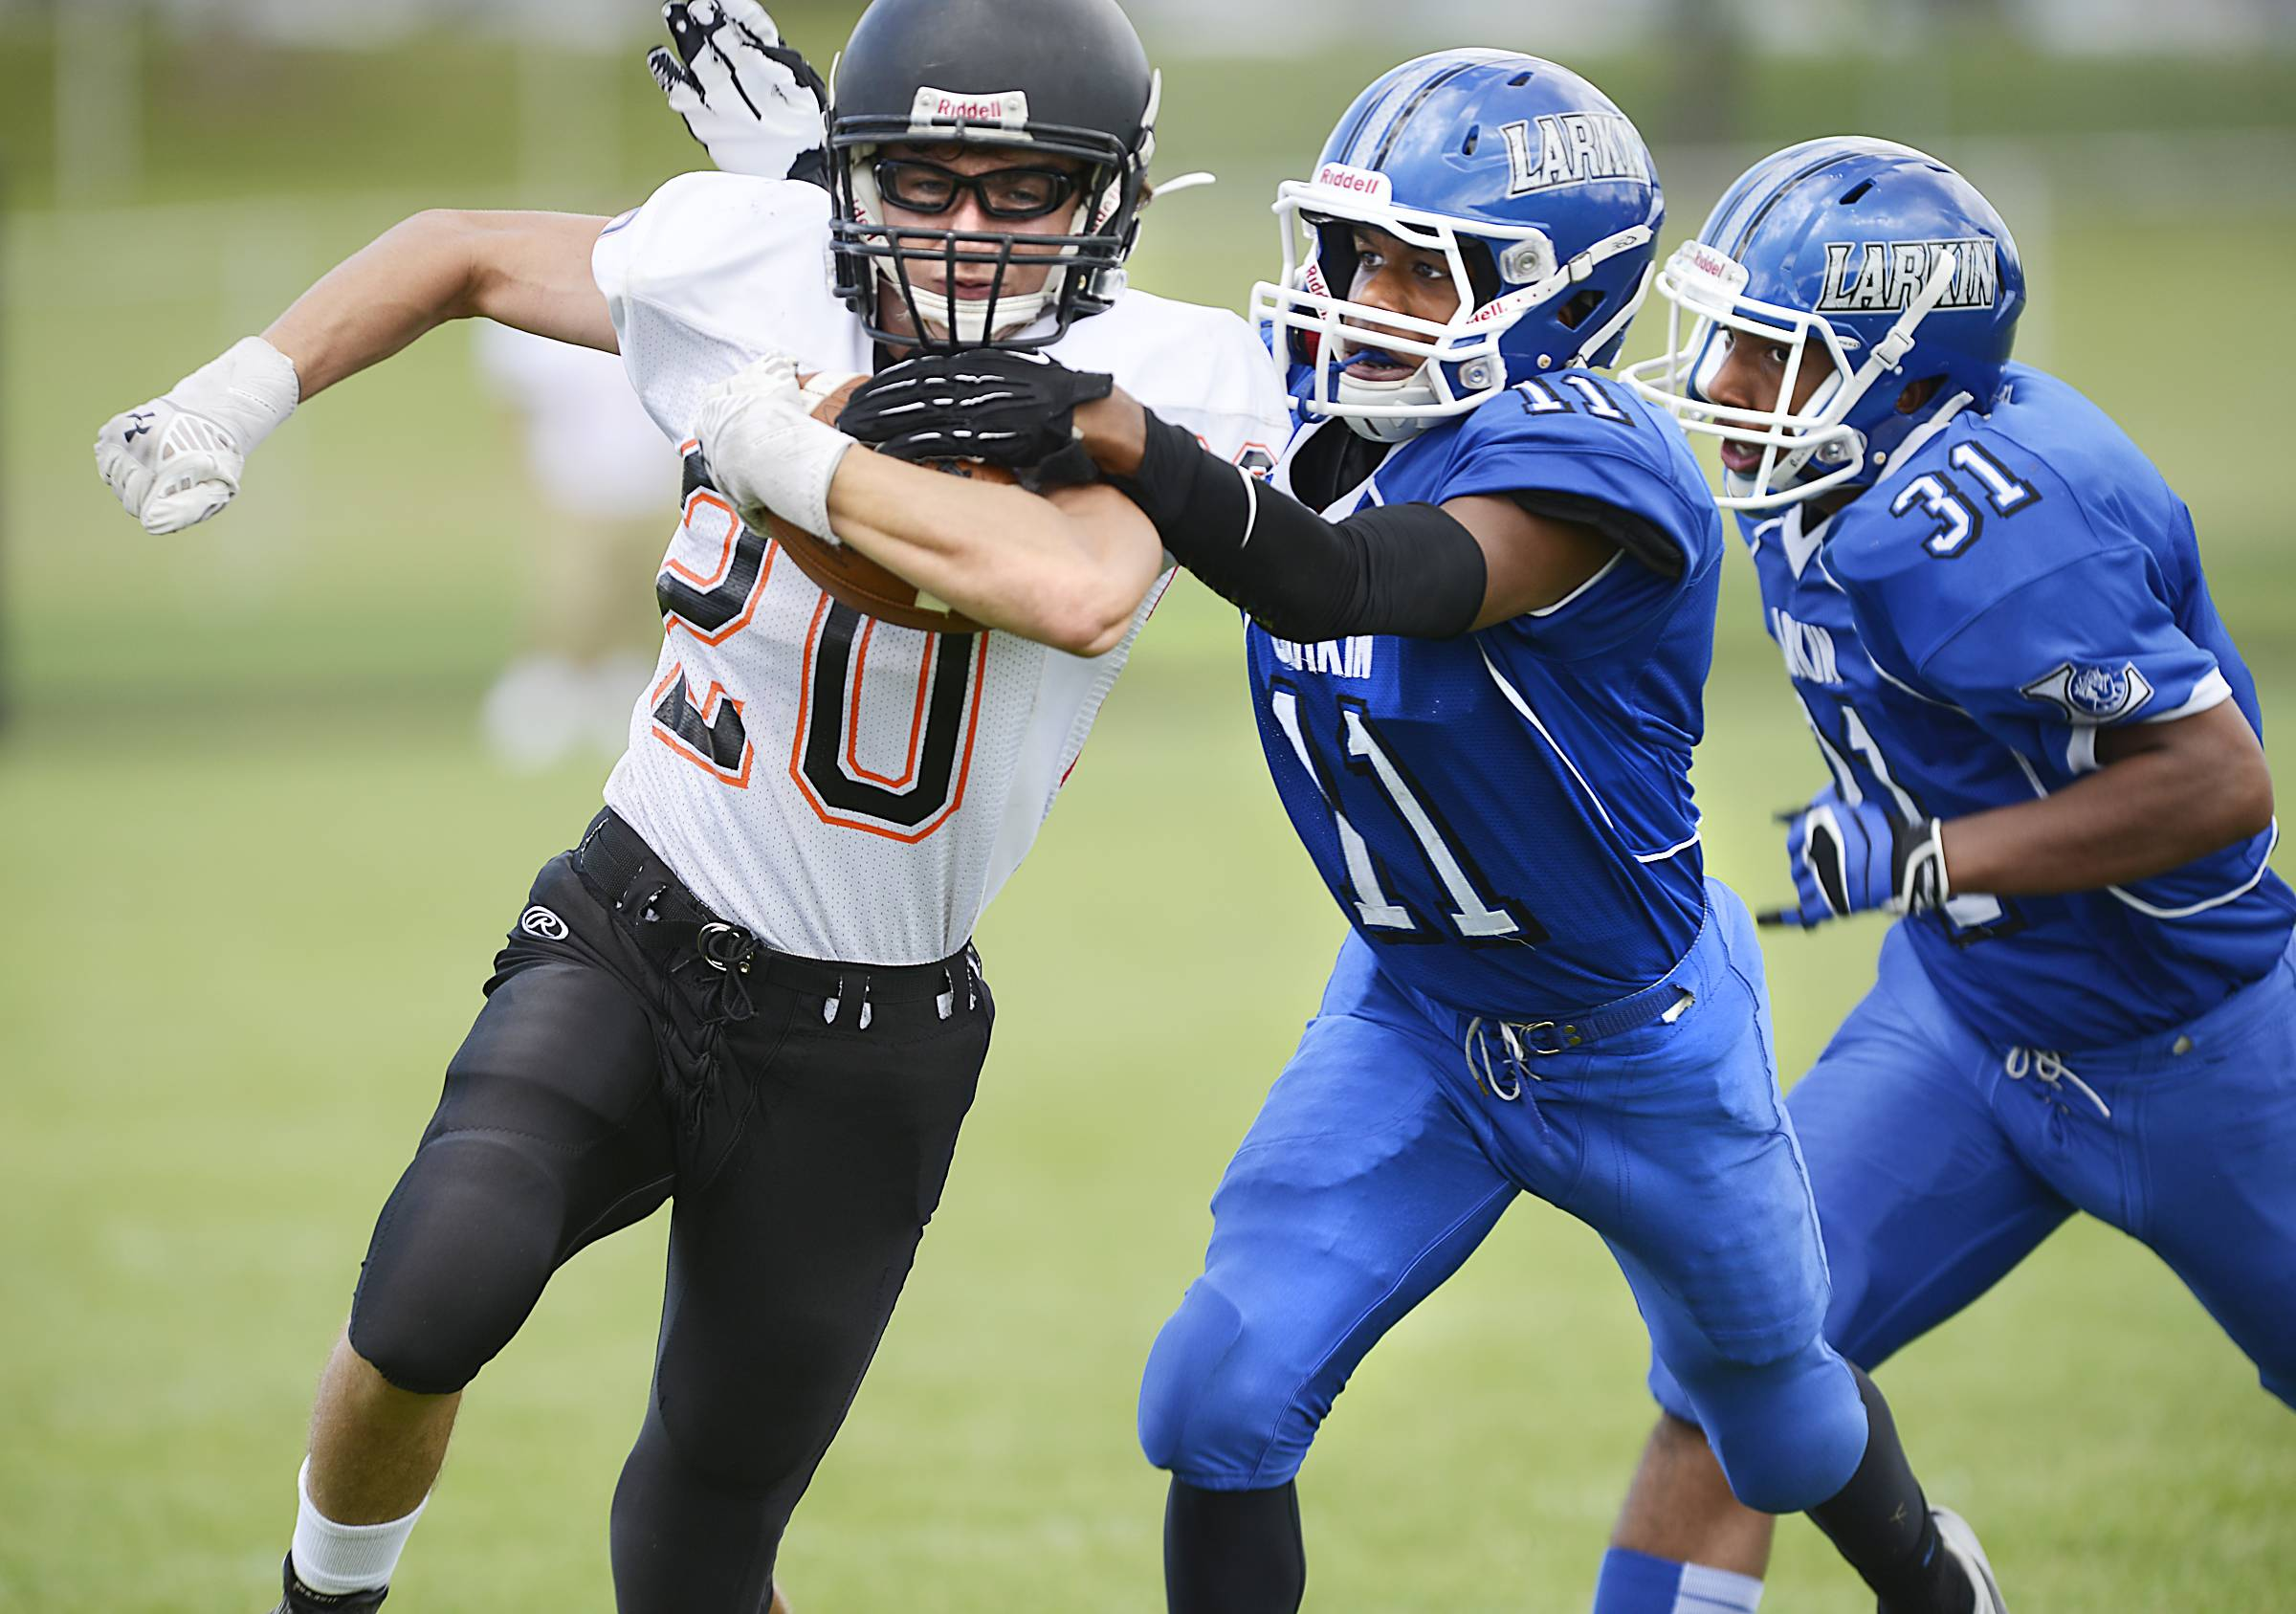 Images: Larkin vs. McHenry, football